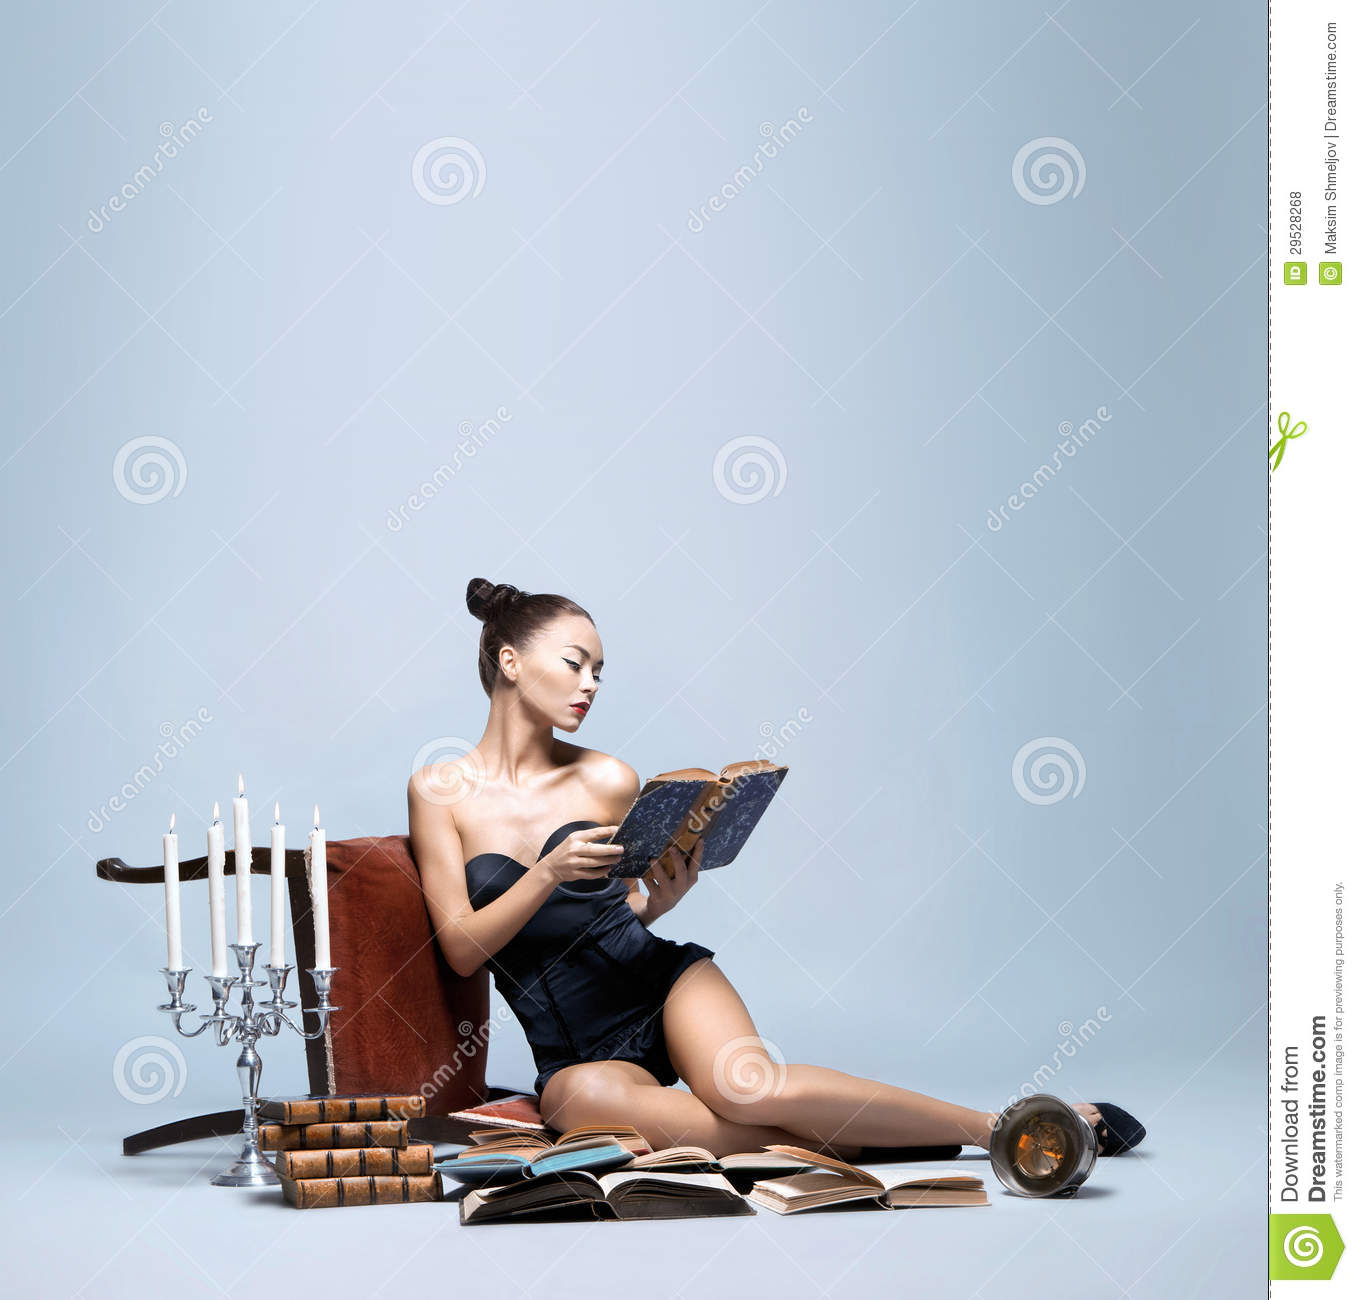 Fashion Shoot Of A Young Woman Reading Books Royalty Free Stock Photos Image 29528268